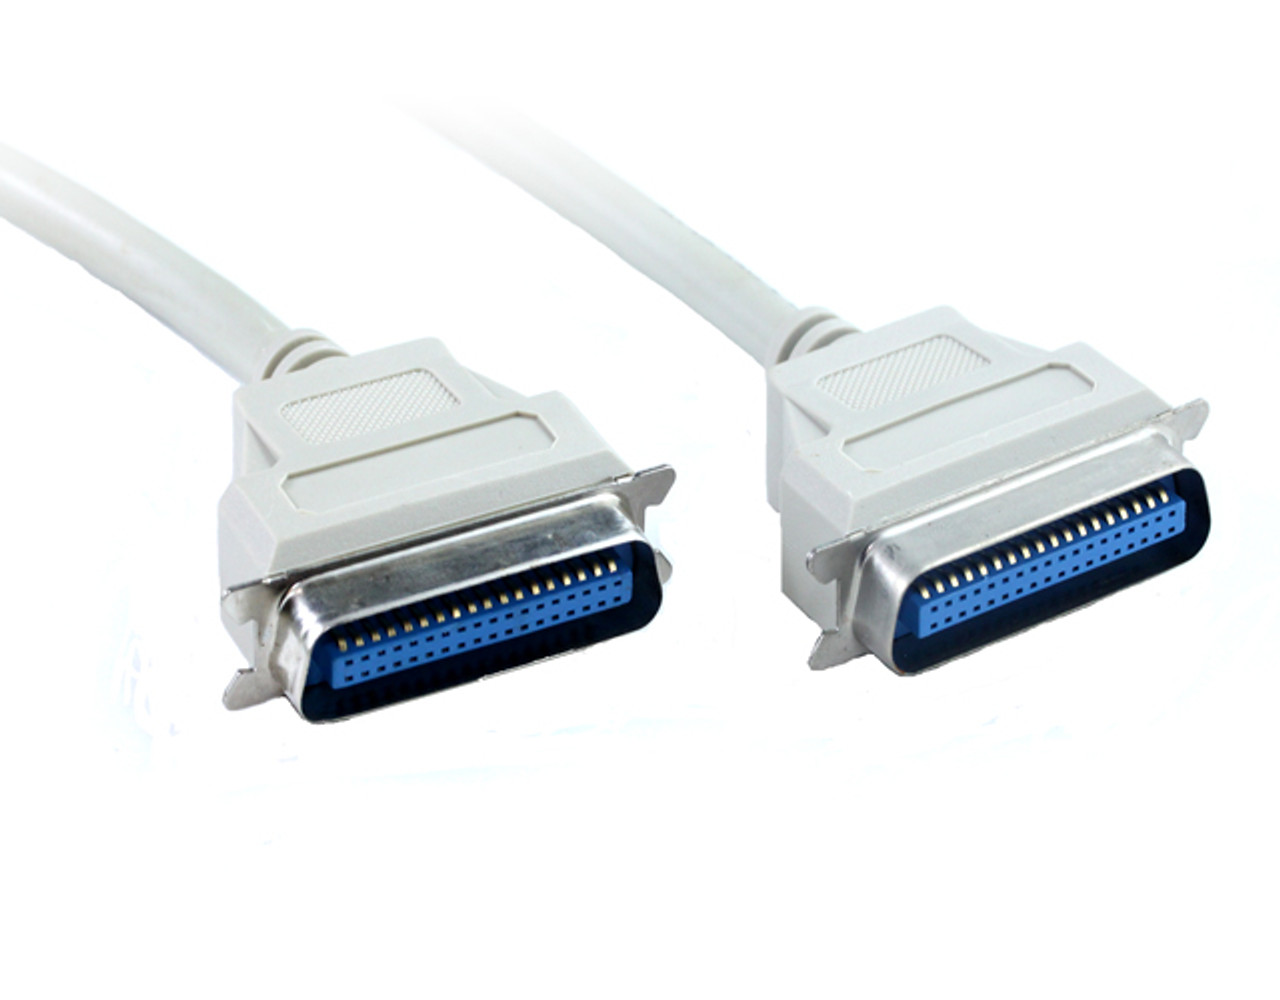 Product image for 2M Centronic 36 M/M Cable | CX Computer Superstore